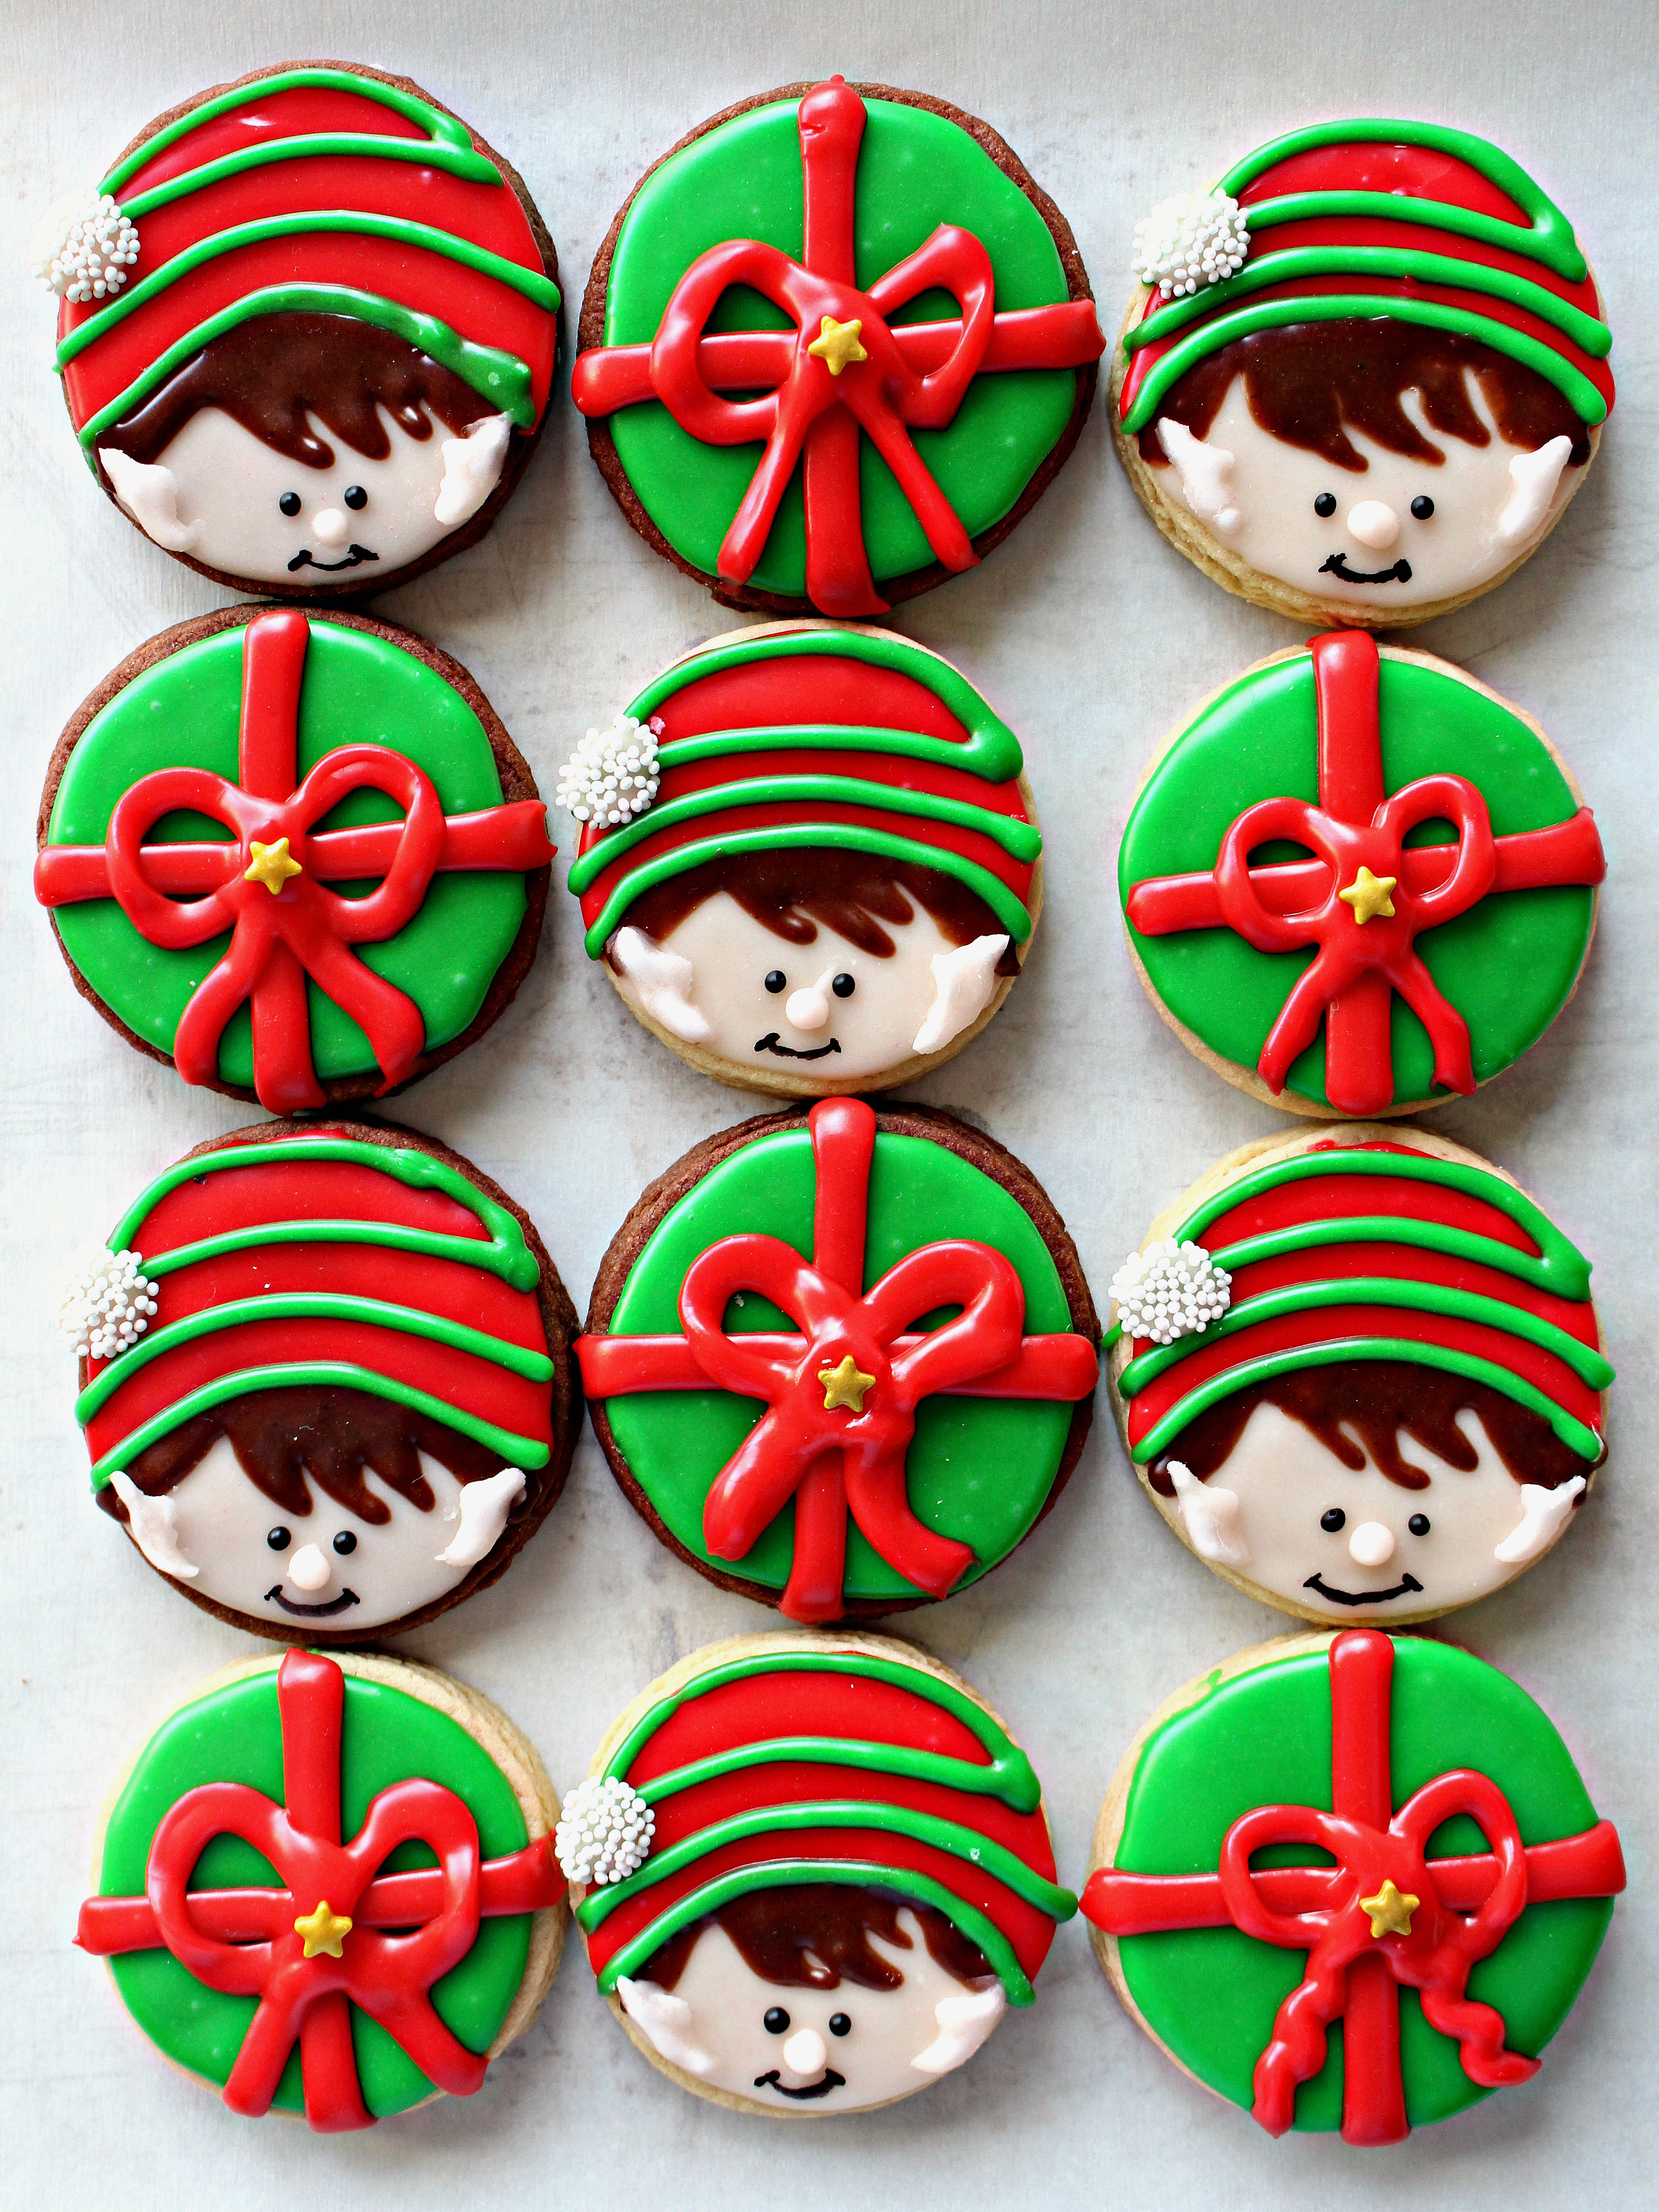 Elf On The Shelf Sugar Cookies The Monday Box